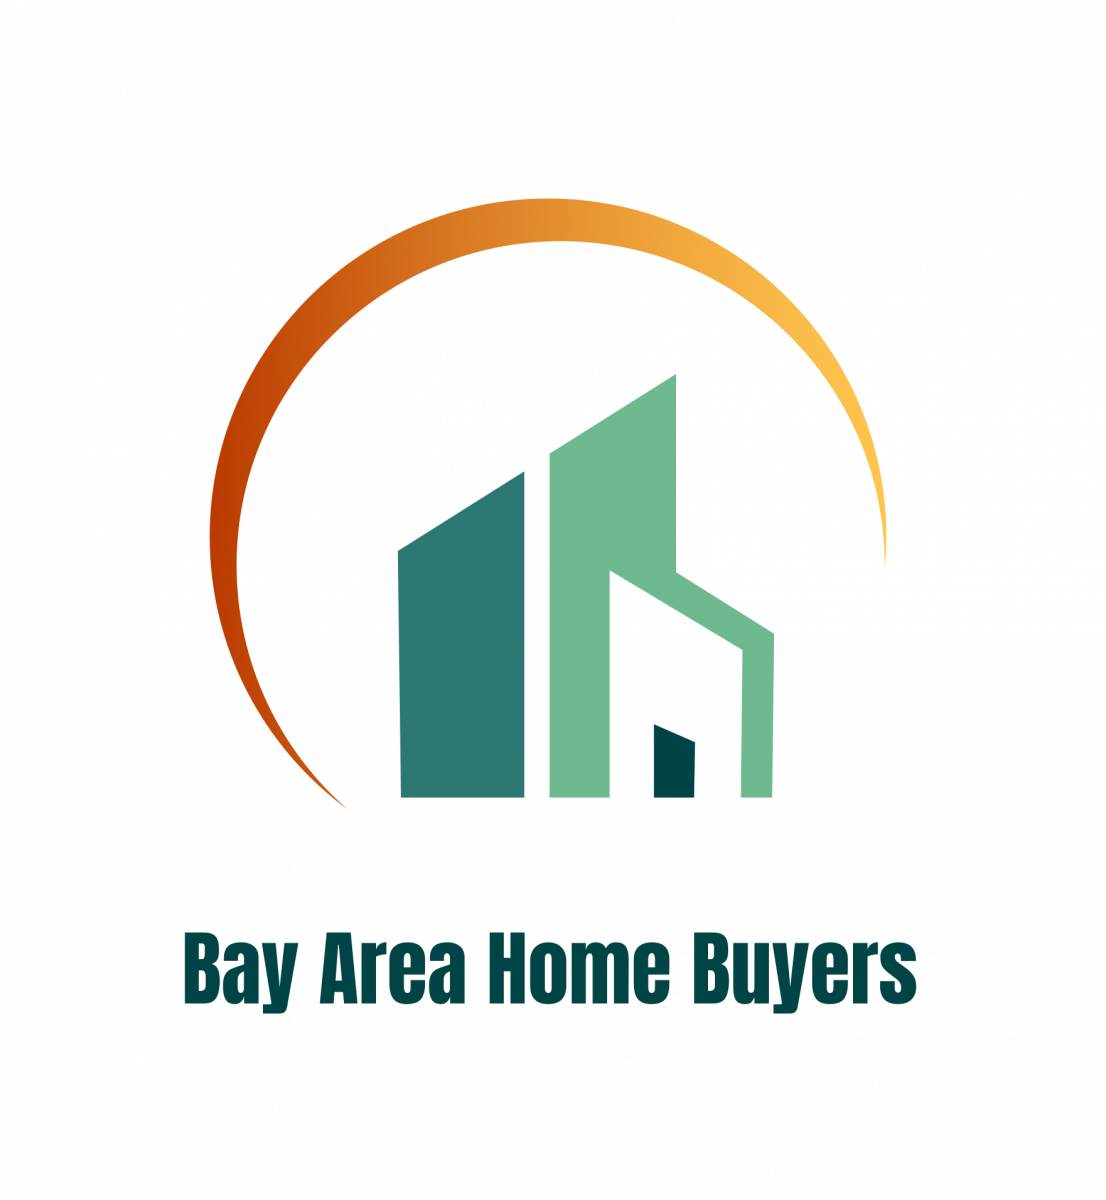 Bay Area Home Buyers logo